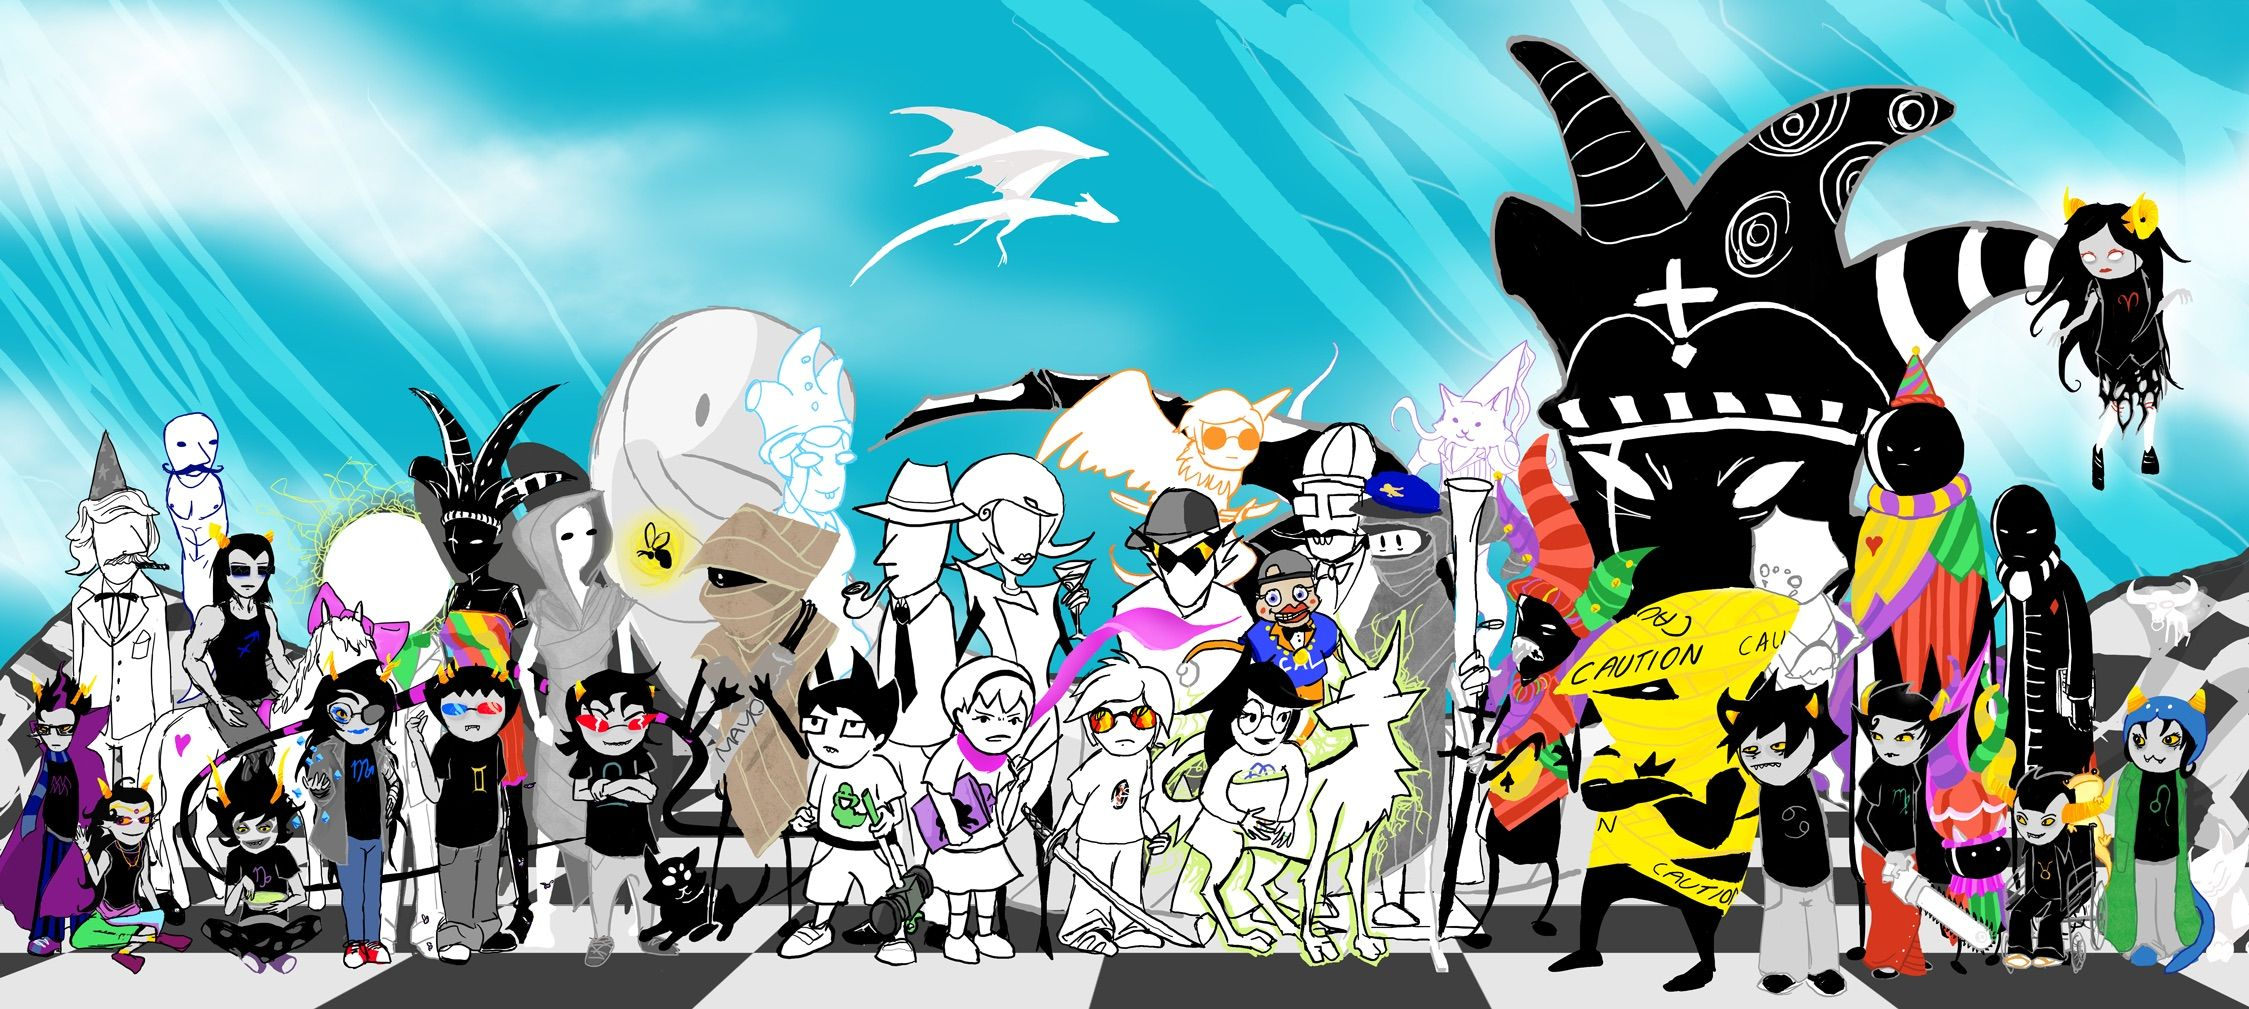 Pin By Take To The Sky On Homestuck Anime Wallpaper Homestuck Anime